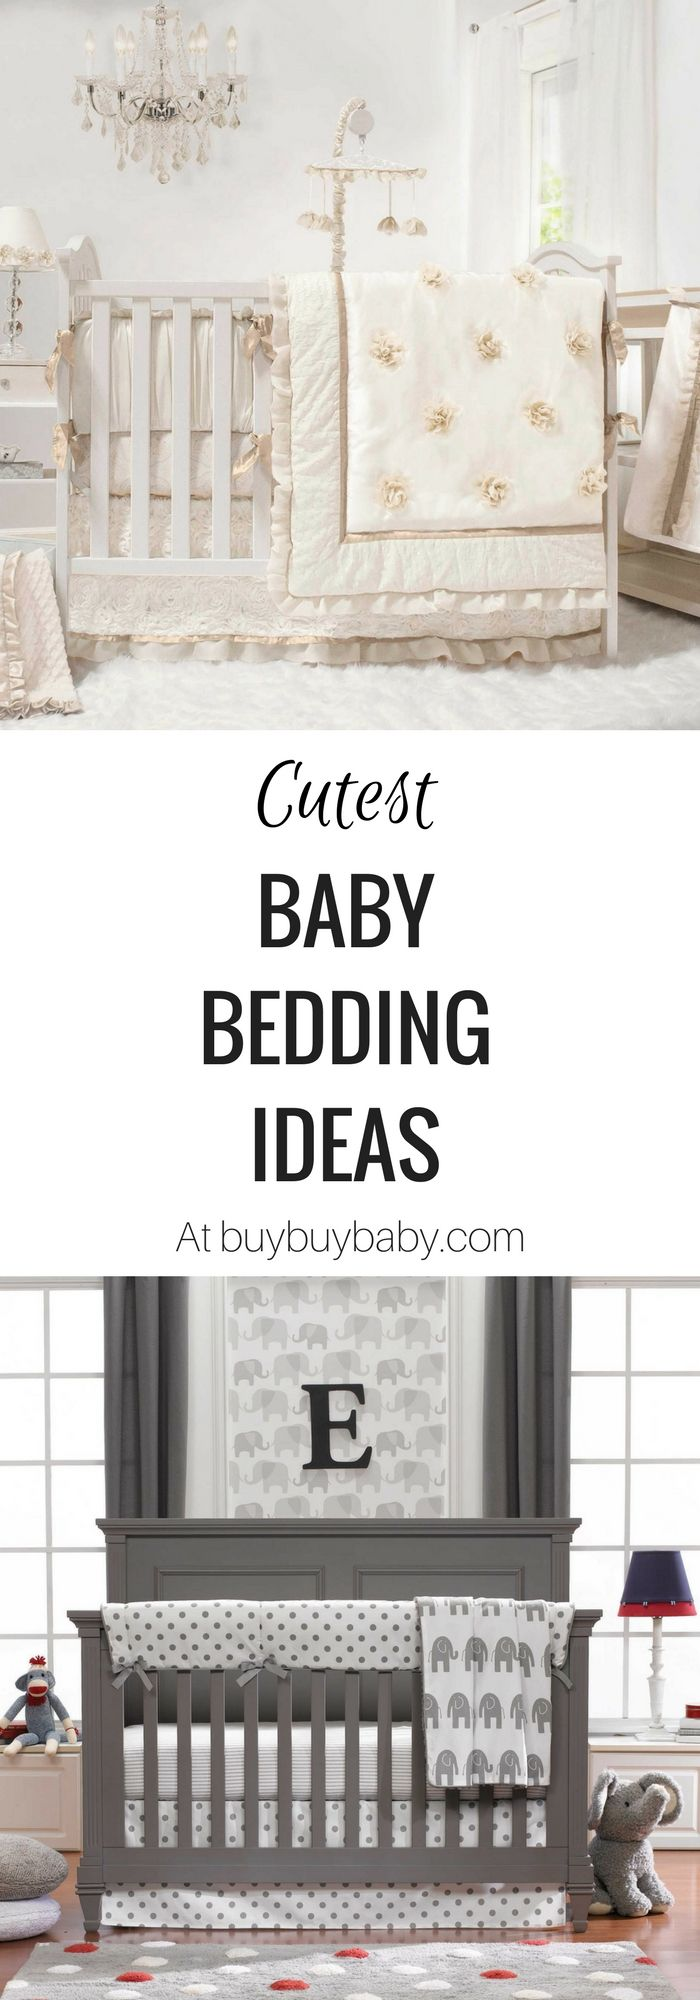 Looking for some cute baby bedding ideas? There are so many crib bedding sets, crib sheets and mattress pads & covers at buybuyBABY. (http://shopstyle.it/l/caHf). Maybe you're looking for certain patterns like rustic, shabby chic, vintage or woodland. They have great variety of baby bedding sets for baby boys and girls. There is also a nice selection of gender neutral patterns too! {Ad}